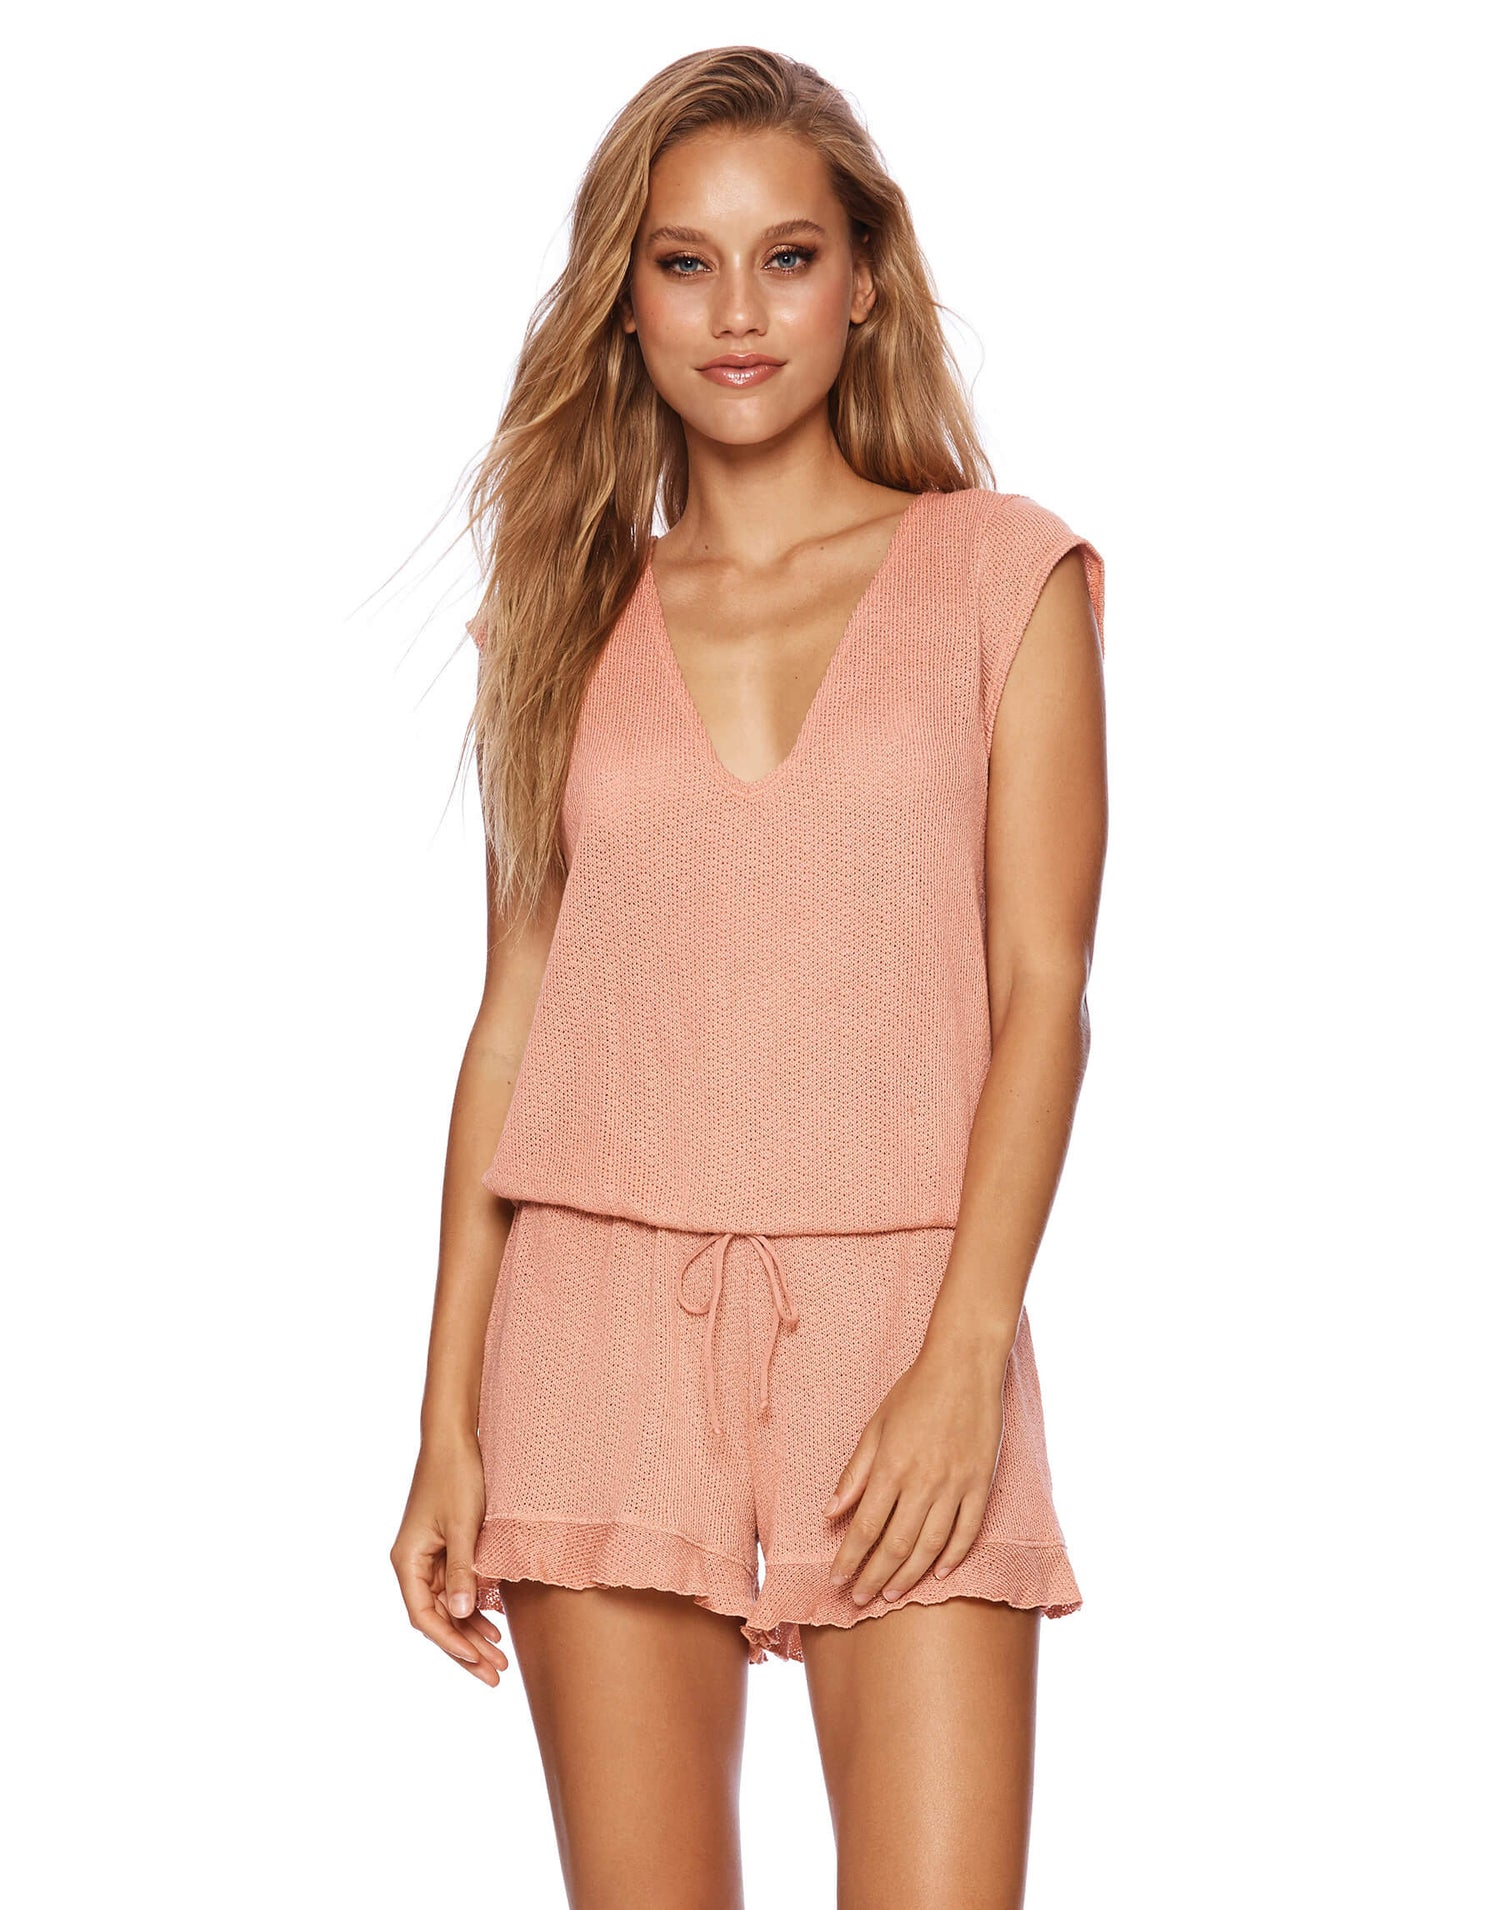 Rose Pink Annika Cute Romper for Summer - front view